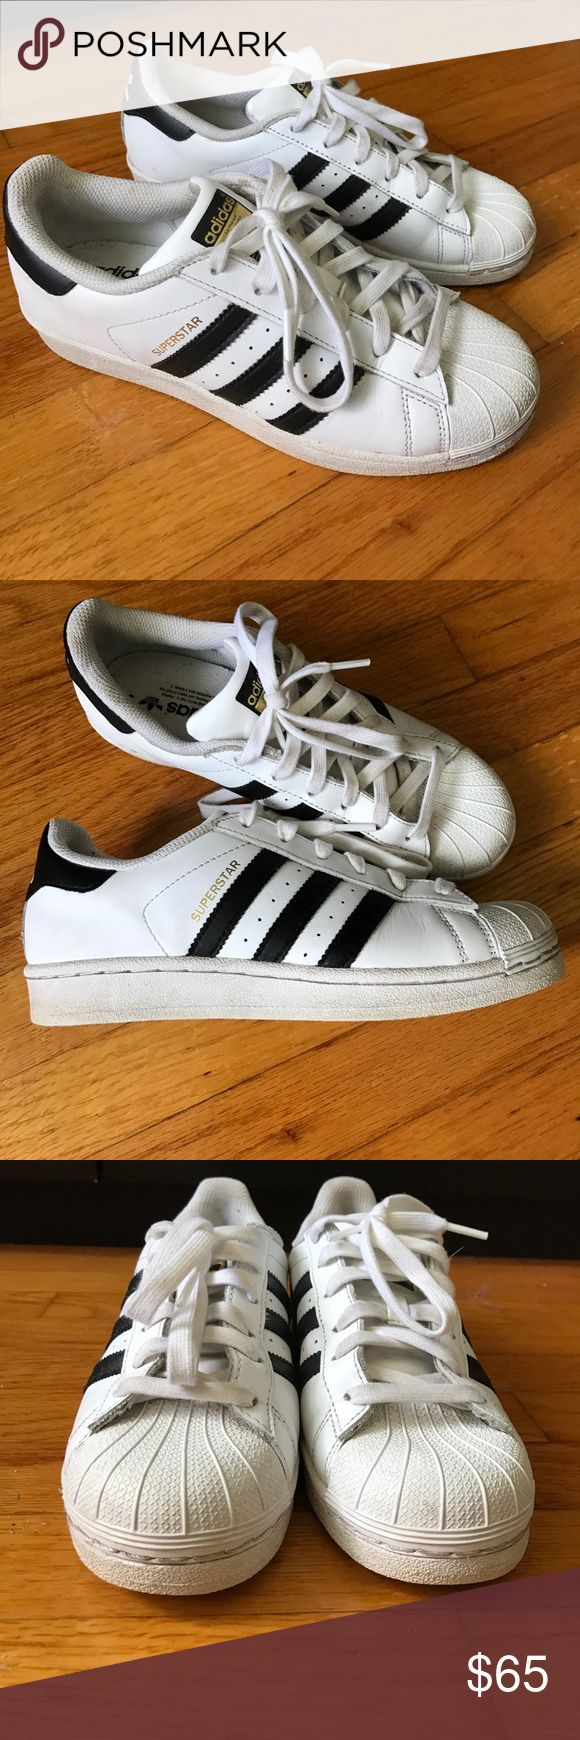 Adidas Superstar Shoes Classic white and black Adidas superstar. Worn only one day to Coachella so are in great condition despite some minor dirt/sand. Nothing a cleaning can't fix! Adidas Shoes Sneakers